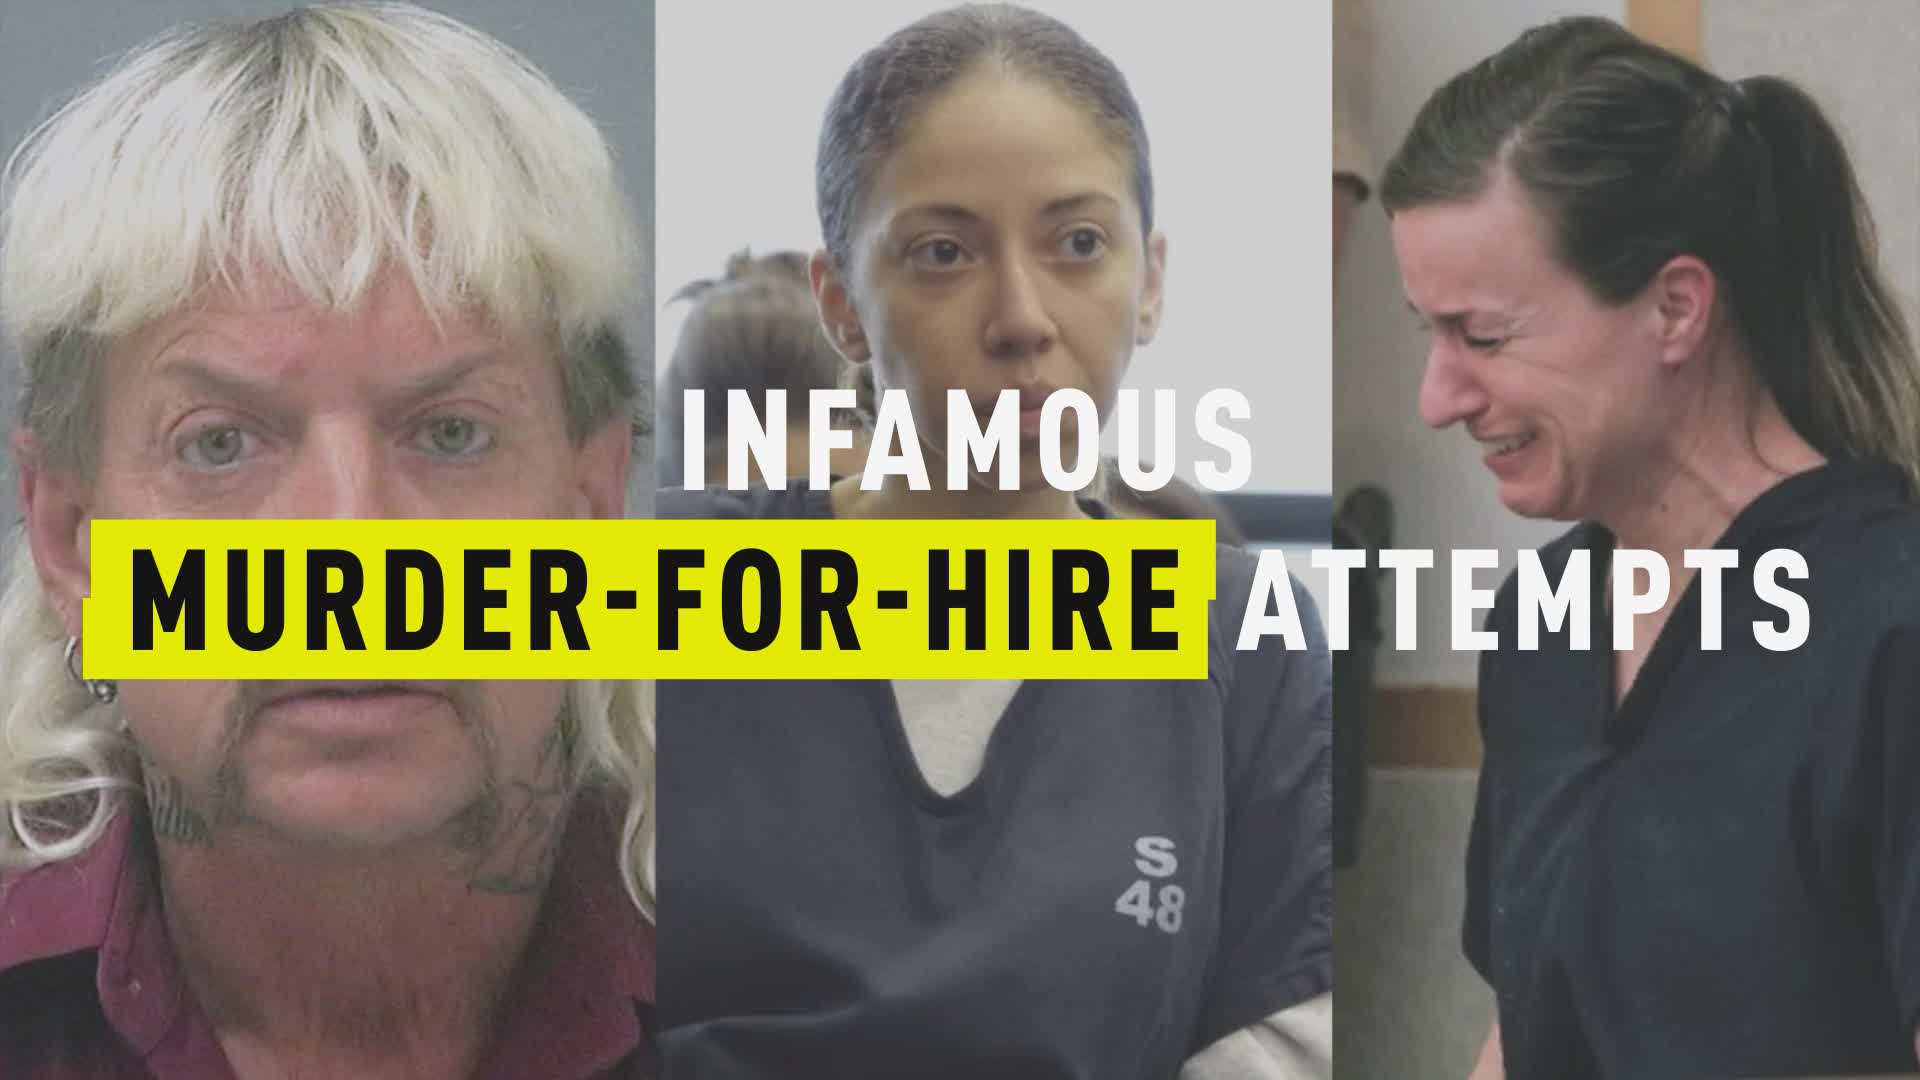 Infamous Murder-For-Hire Attempts